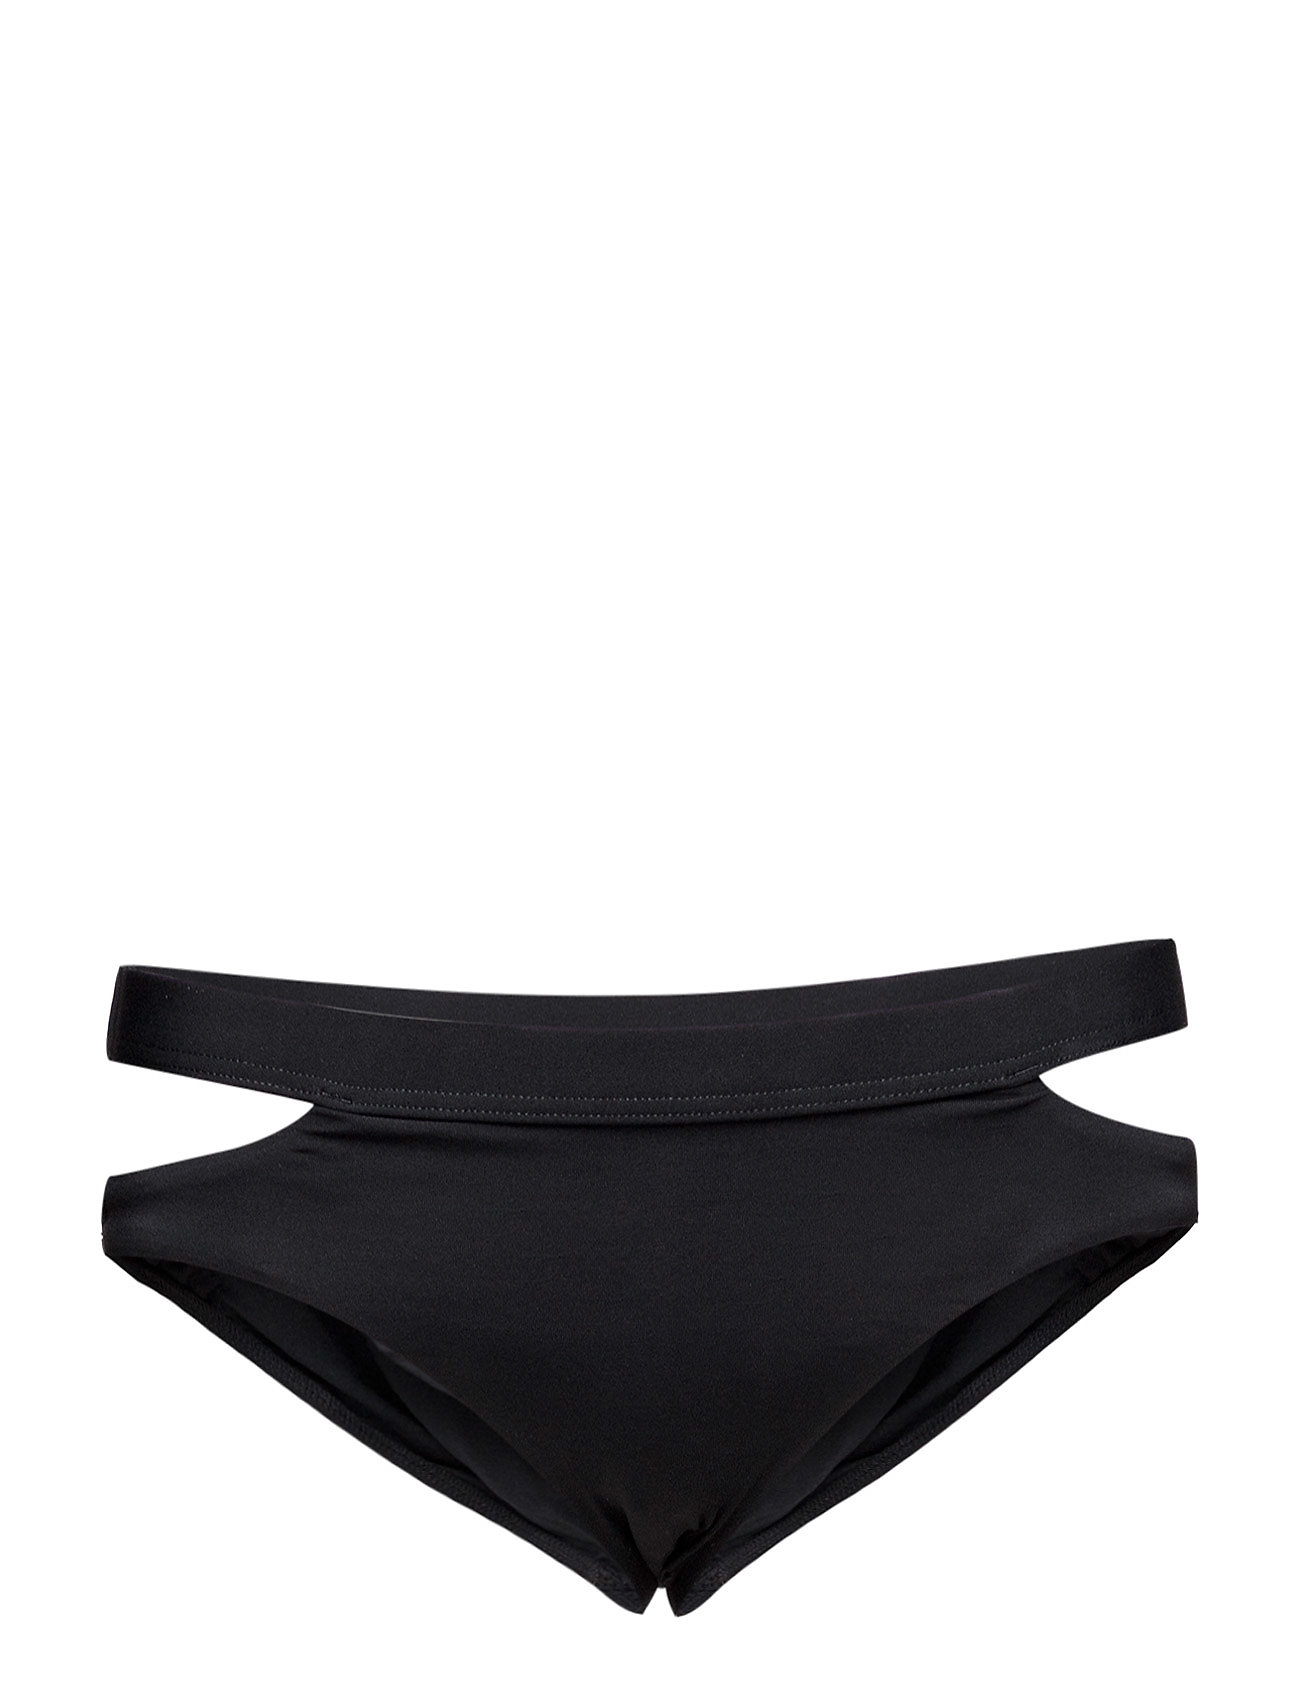 HipsterblackSeafolly Active Active Split Band Split HipsterblackSeafolly Active Split Band 5RAcj4L3q